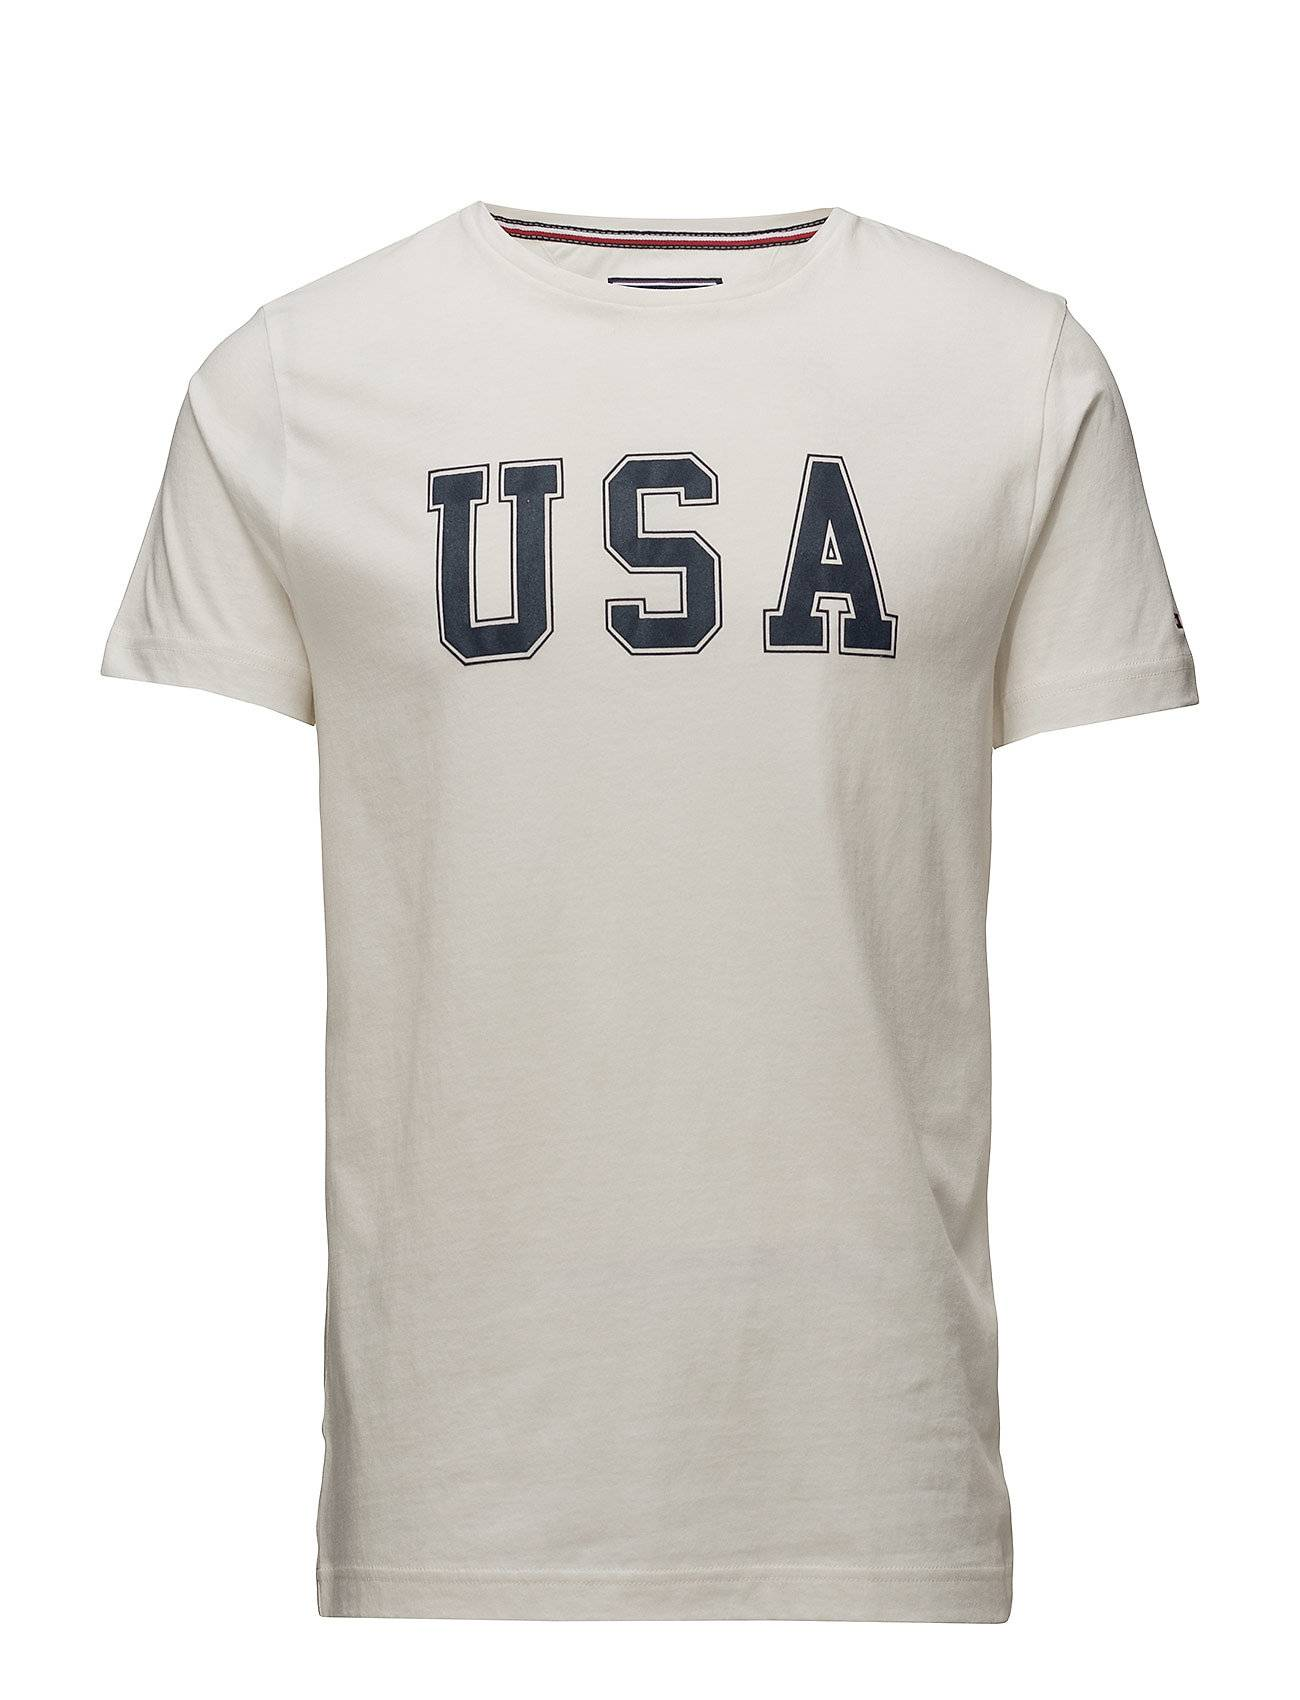 Tommy Hilfiger Wcc Harry C-Nk Tee S